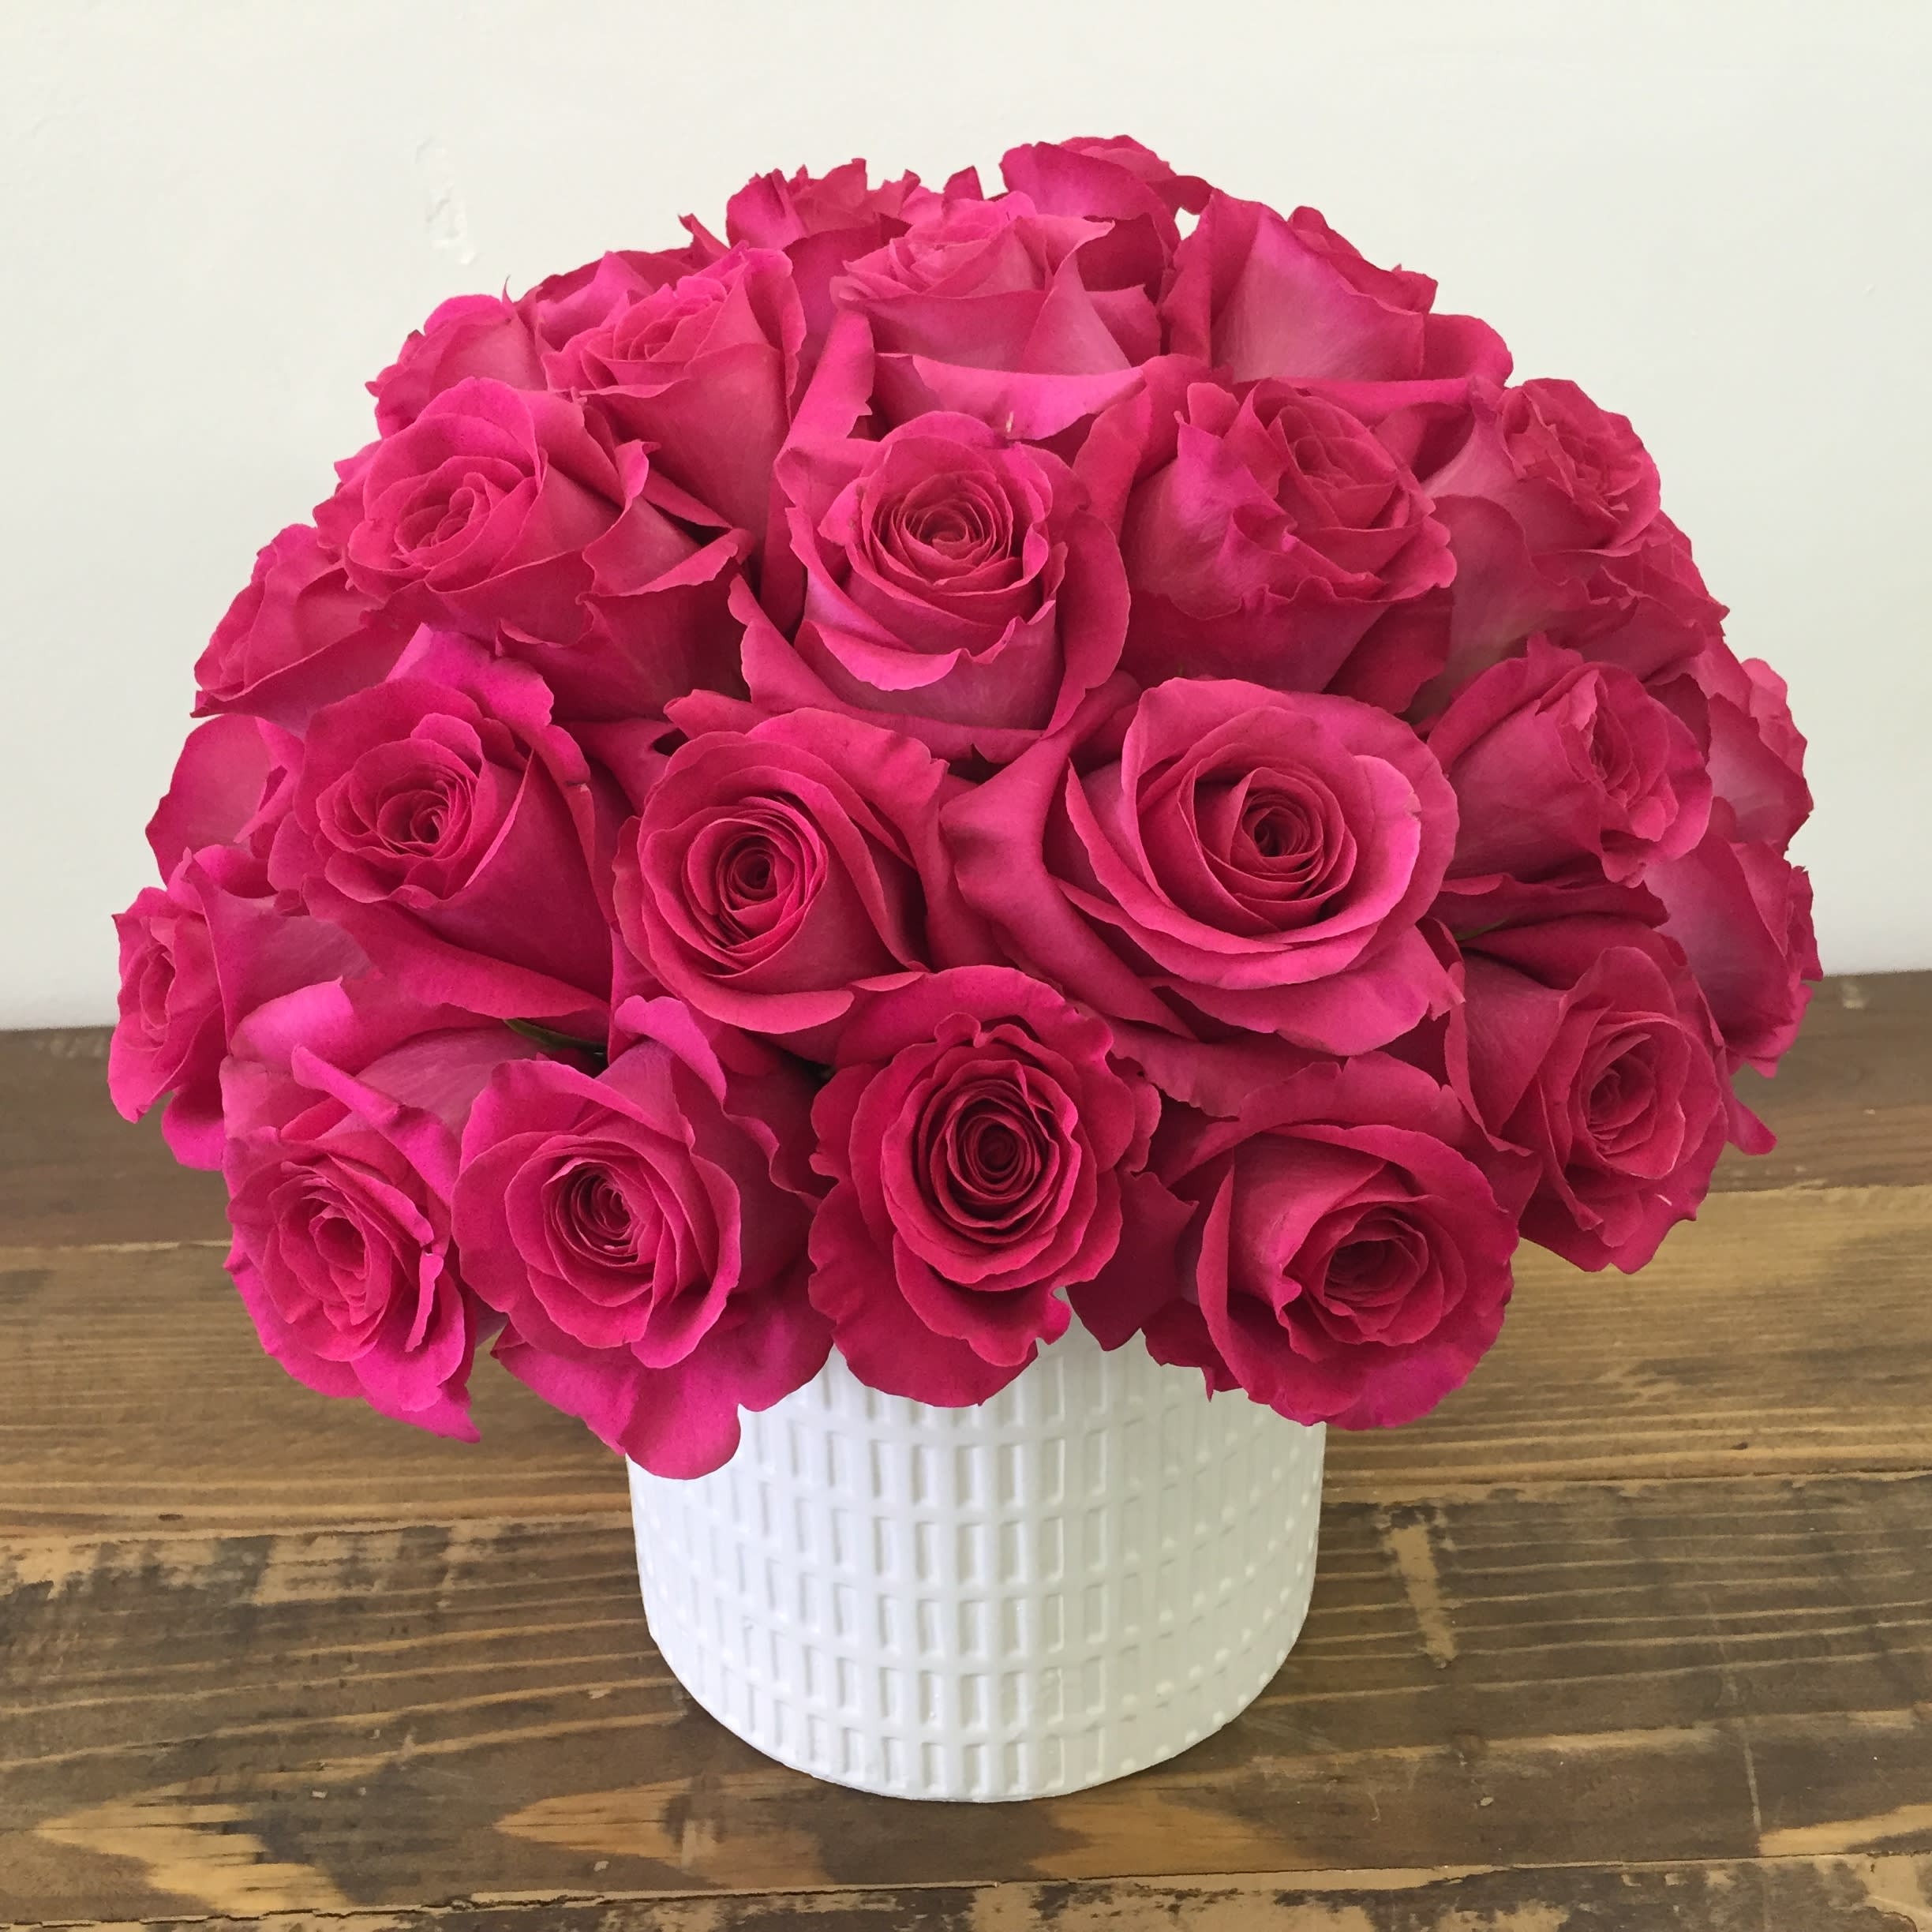 4 Dozen Magnificent Pink Roses By Be A Tall Poppy